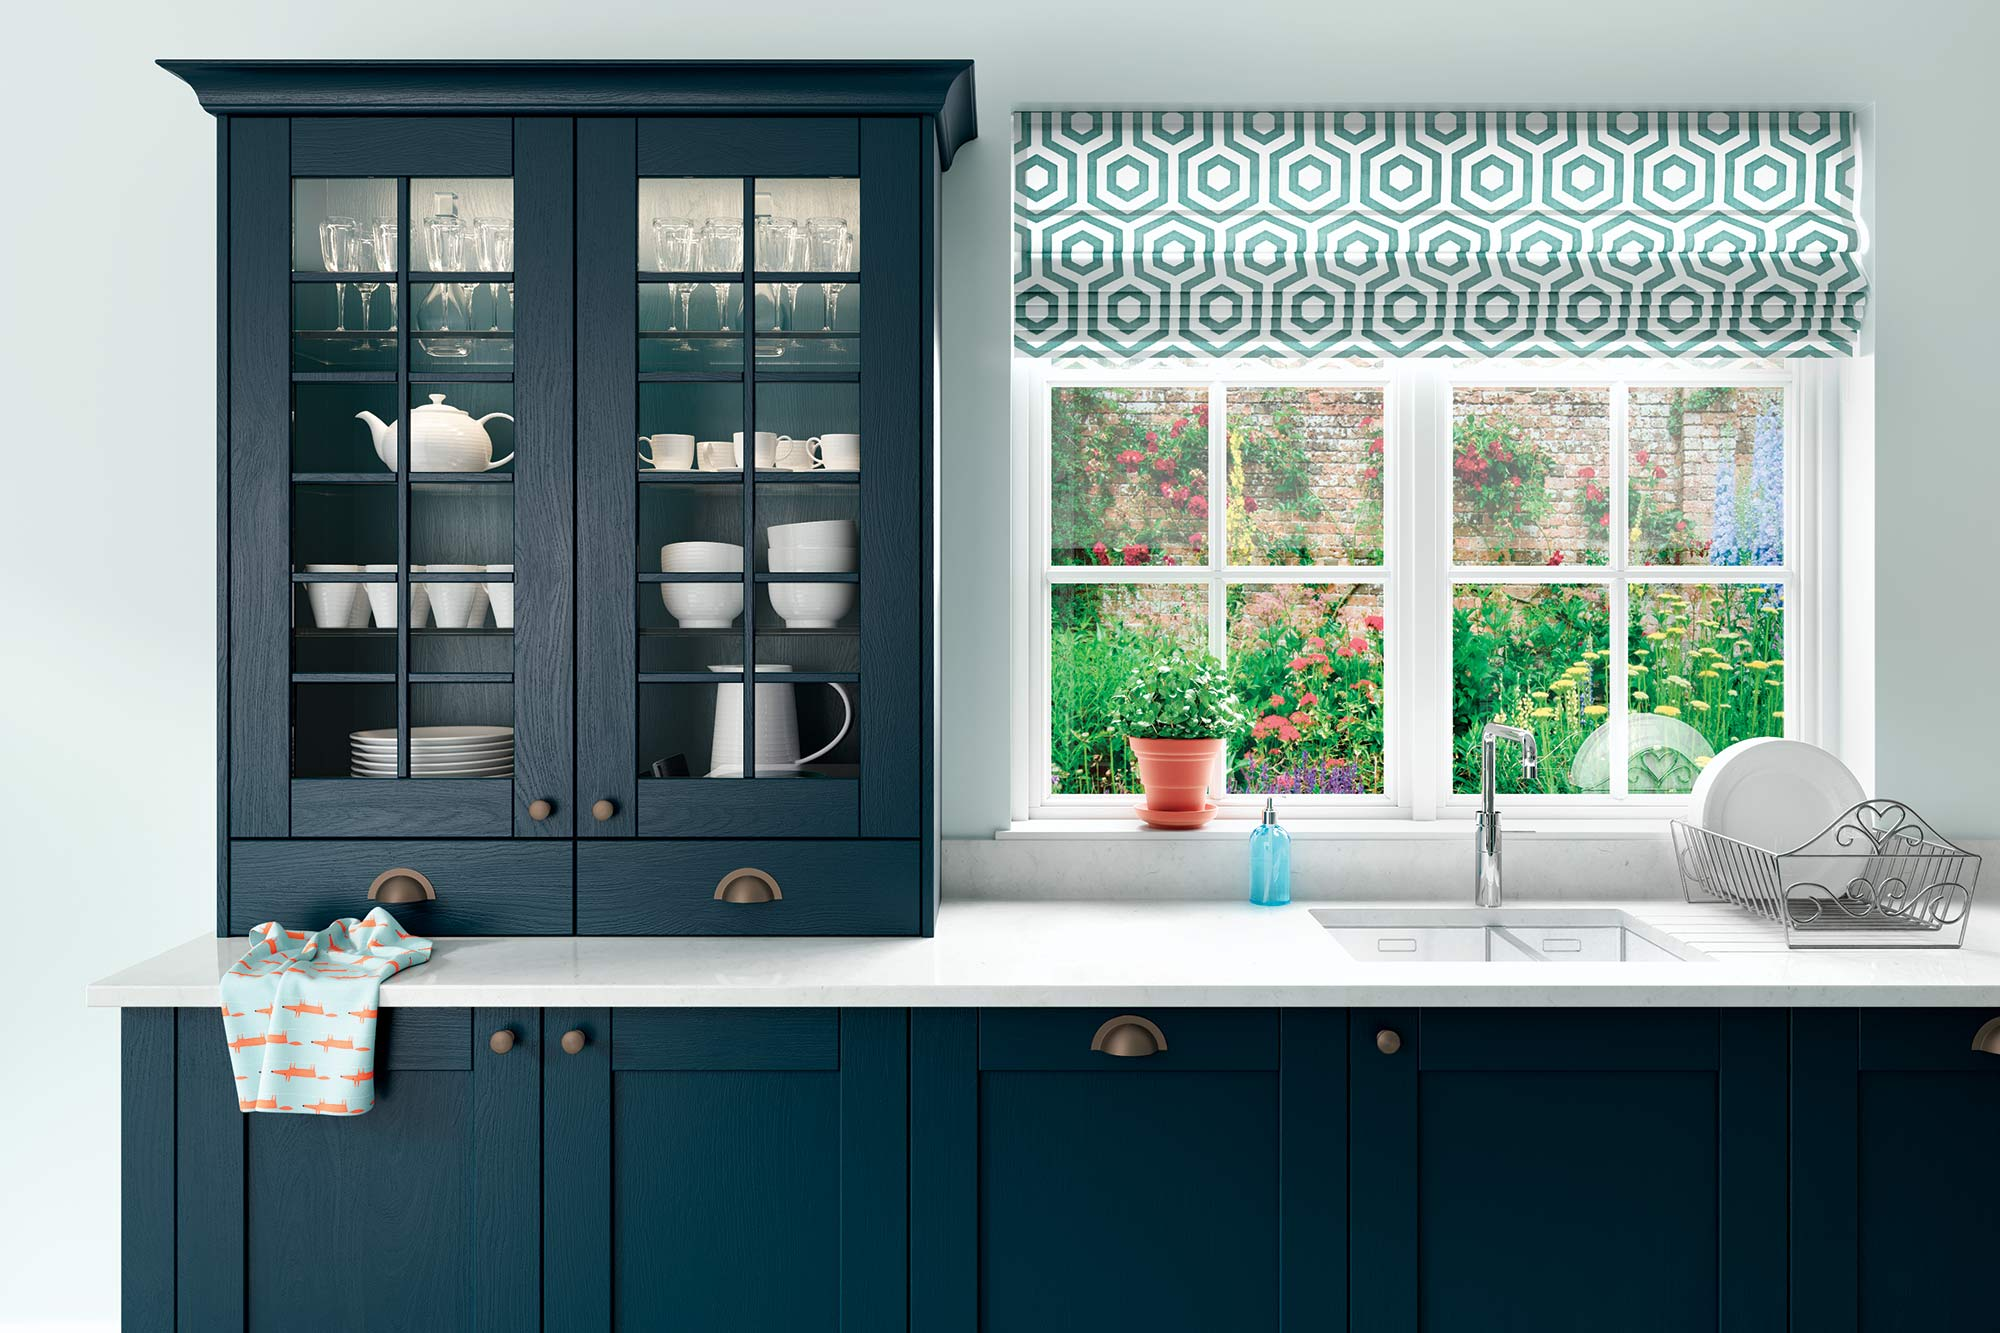 Contemporary style shaker kitchen in marine blue and teal green picture 2